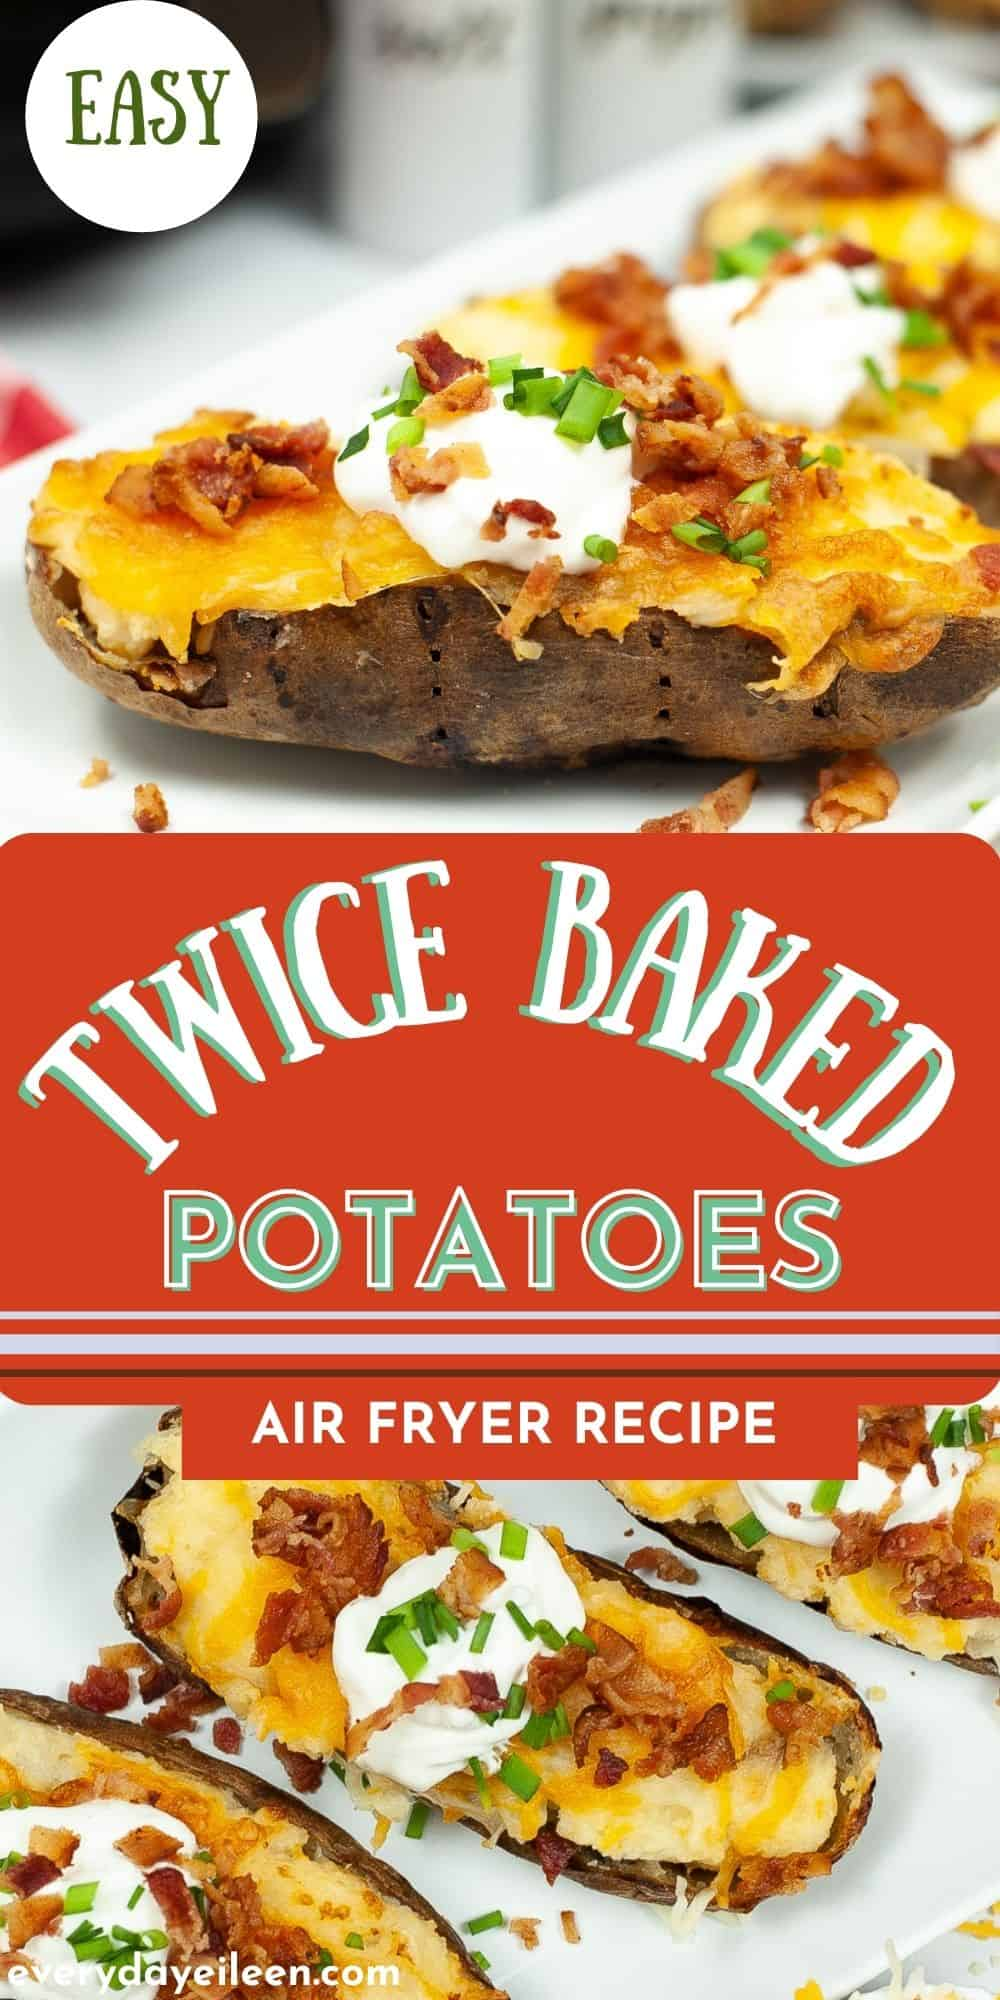 Twice Baked Potatoes, made in the air fryer are full of flavor and creamy. They are light and fluffy with a crispy skin topped with shredded melted cheddar cheese, crumbled bacon, and sour cream. Air fryer baked potatoes freeze well and can be cooked from frozen too. These stuffed potatoes are a family friendly side dish or appetizer.  via @/everydayeileen/